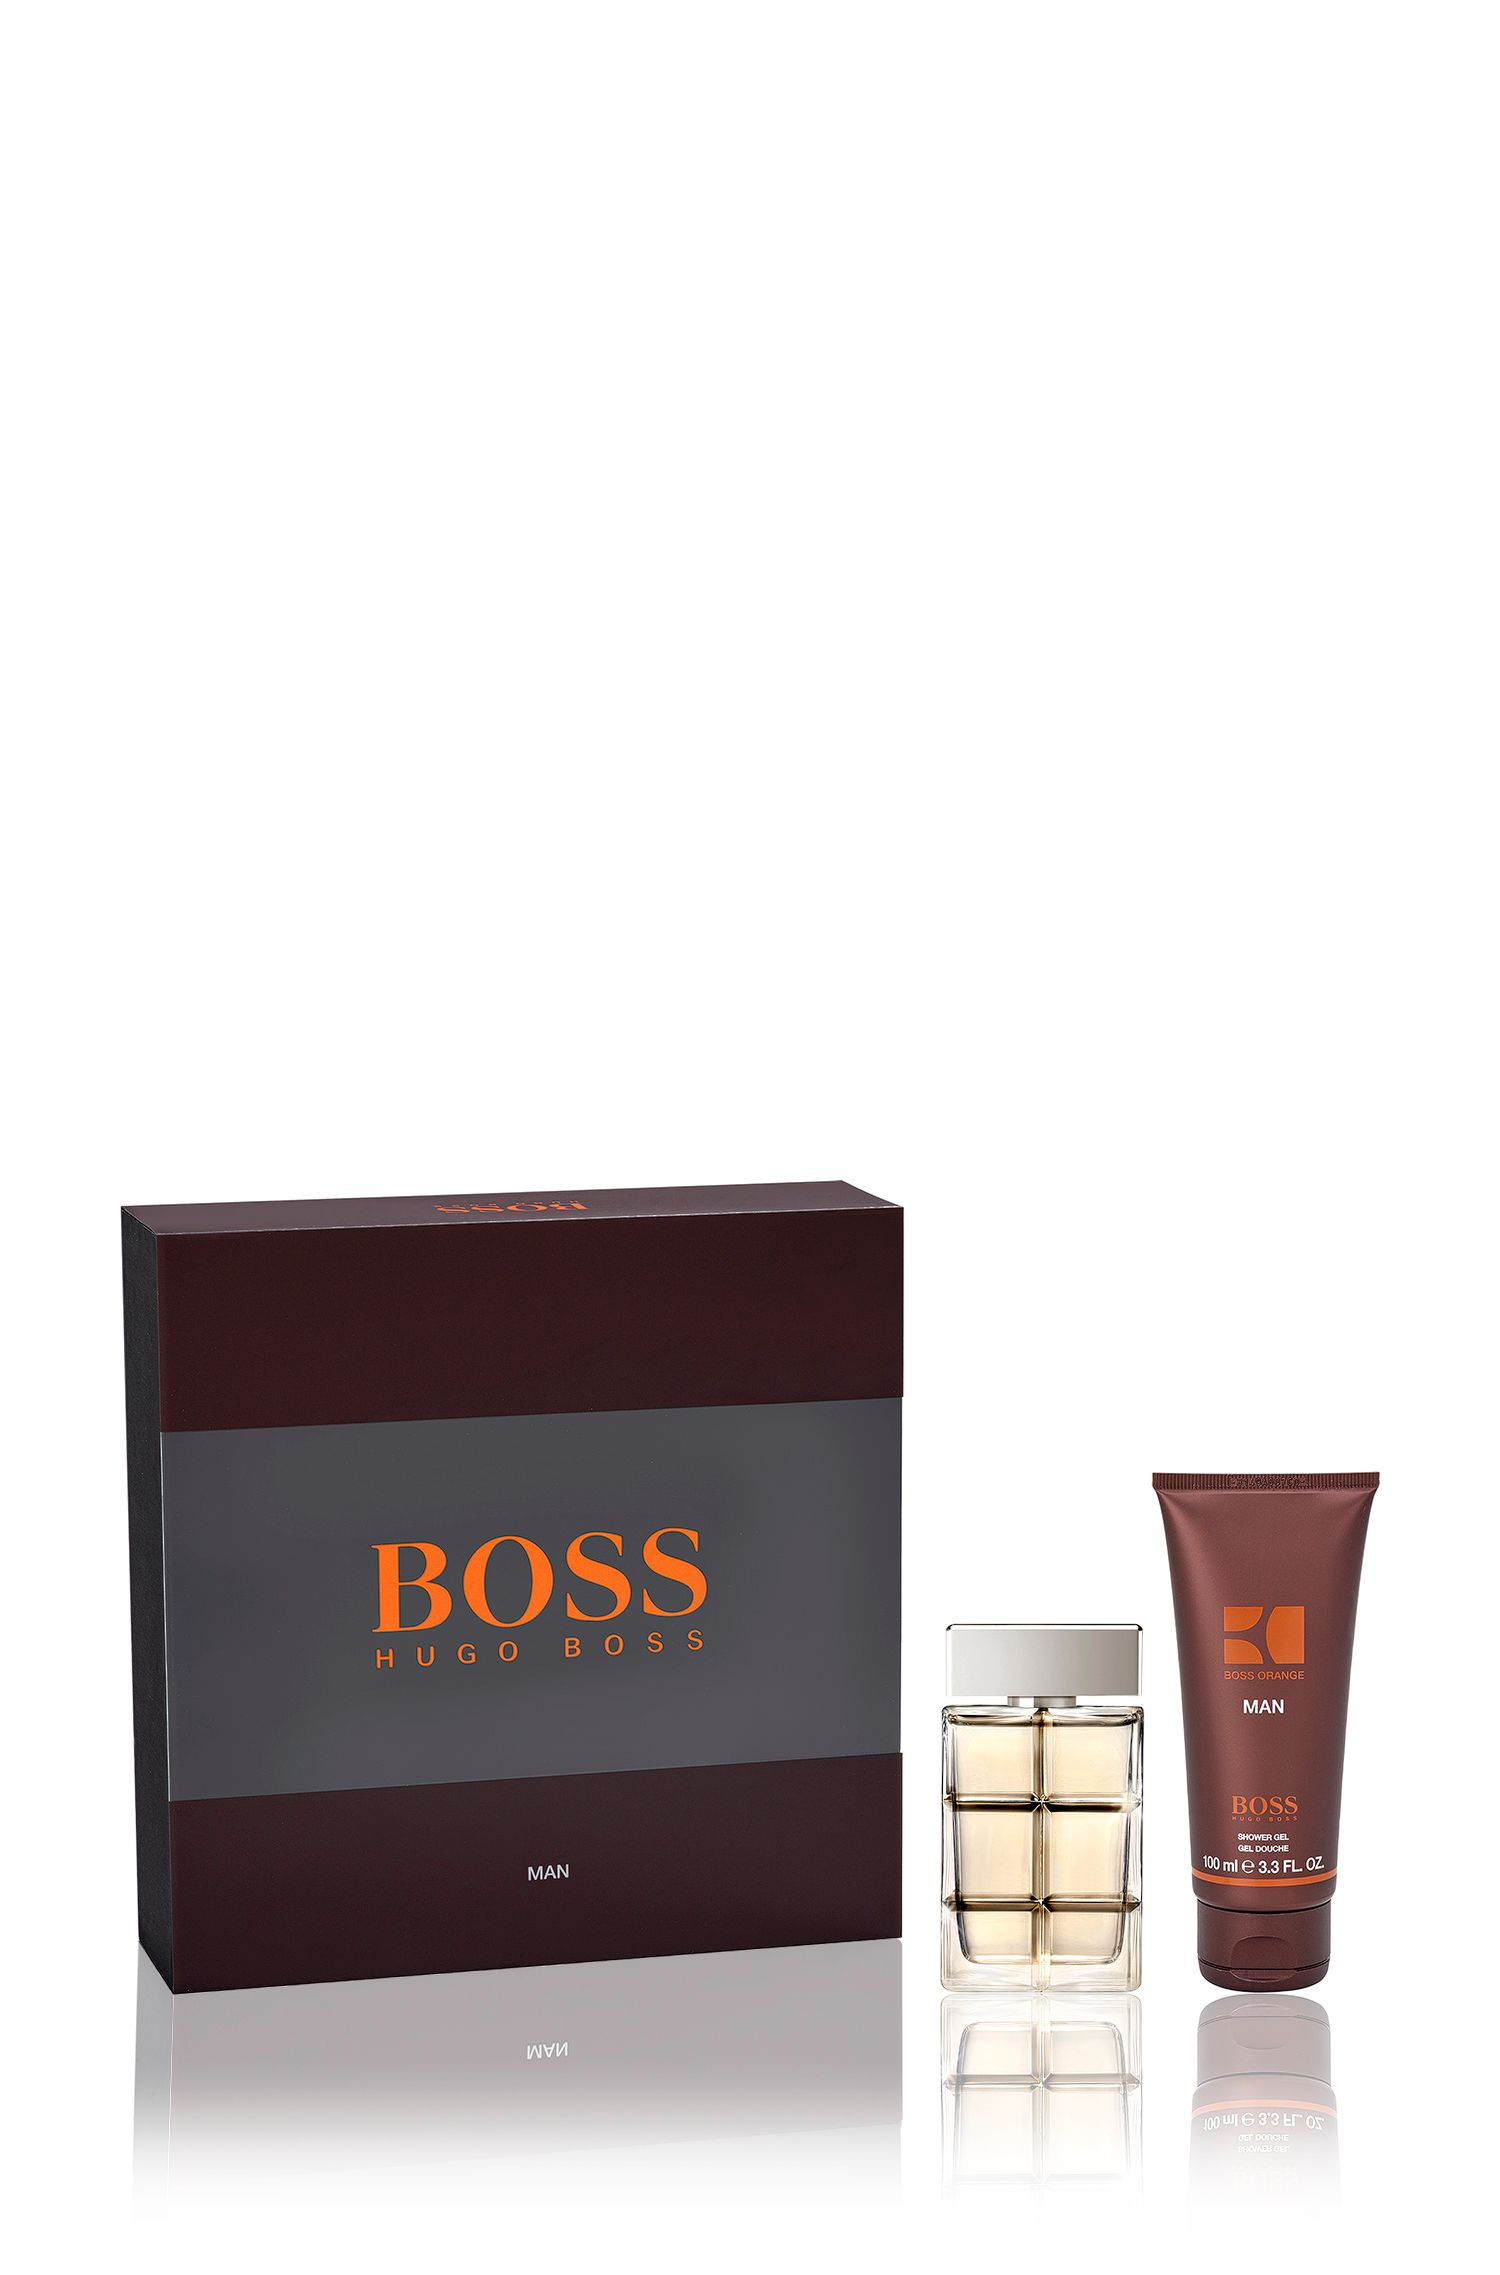 Set de regalo 'BOSS Orange Man' con Eau de Toilette 40 ml y gel de ducha